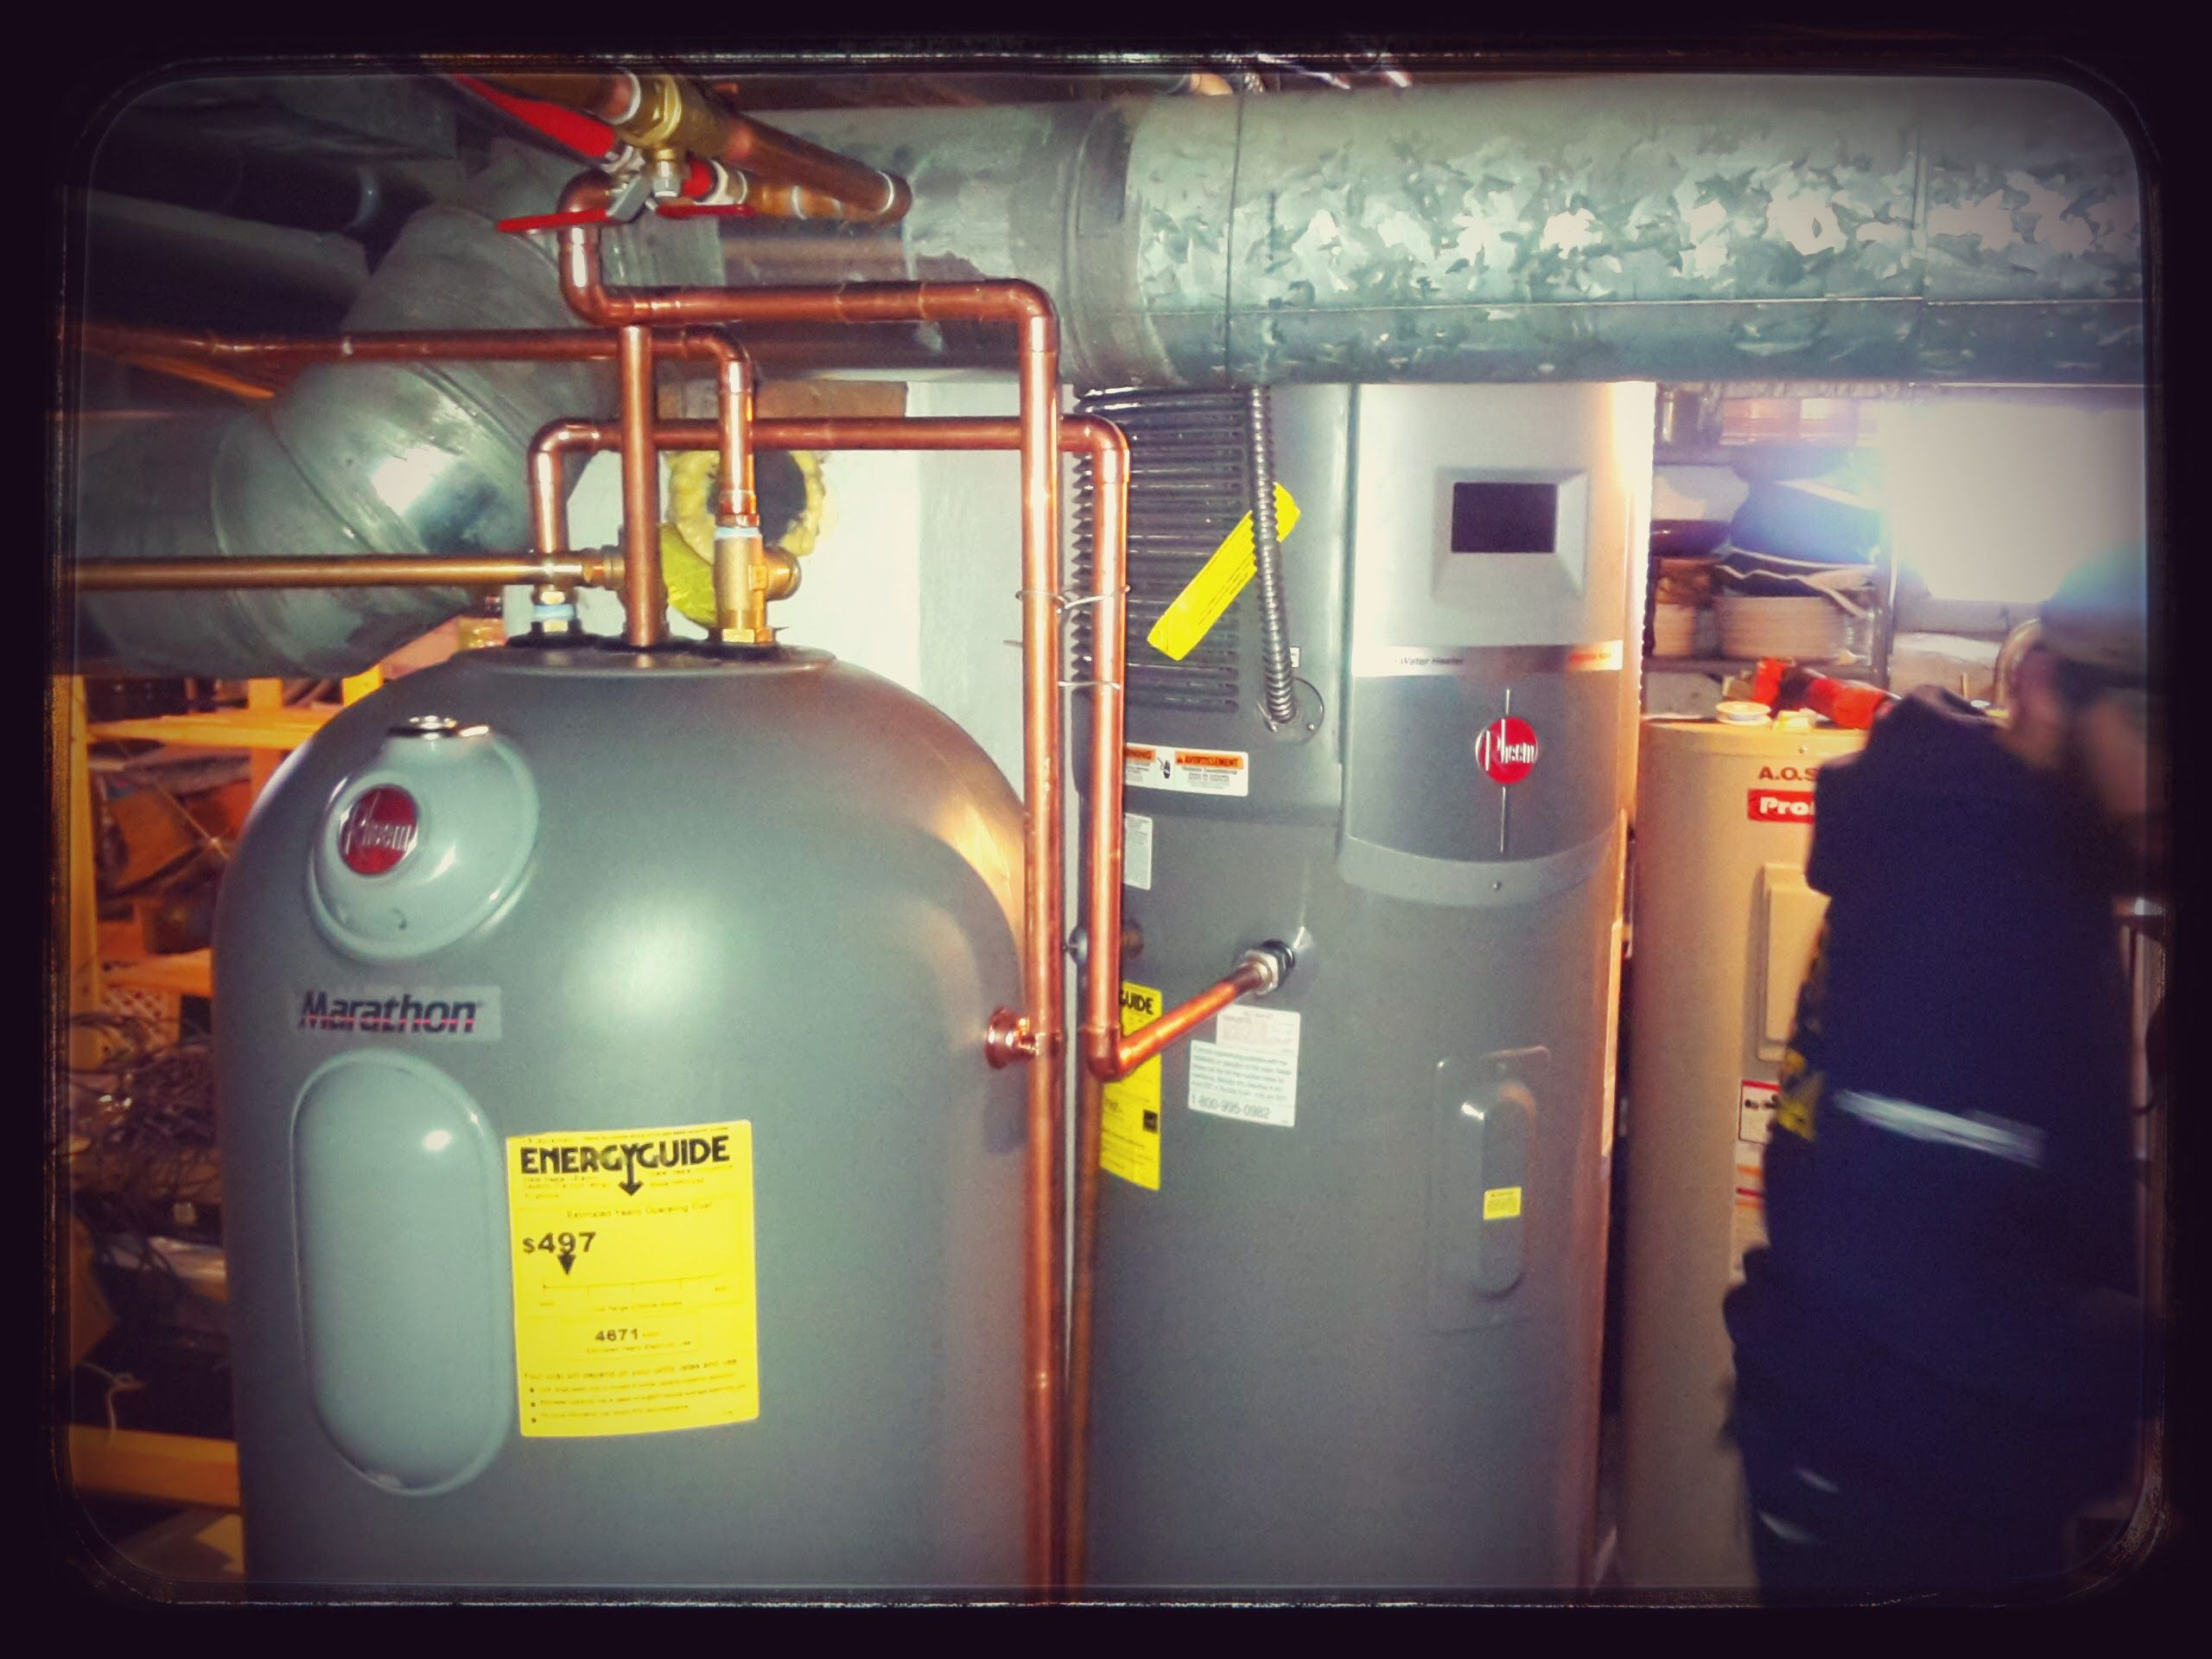 This Looks Like The System For Us Rheem Heat Pump Water Heater And The New Marathon Tank Will Help Us Hold Onto The Free Hot Water Water Heating Home Technology